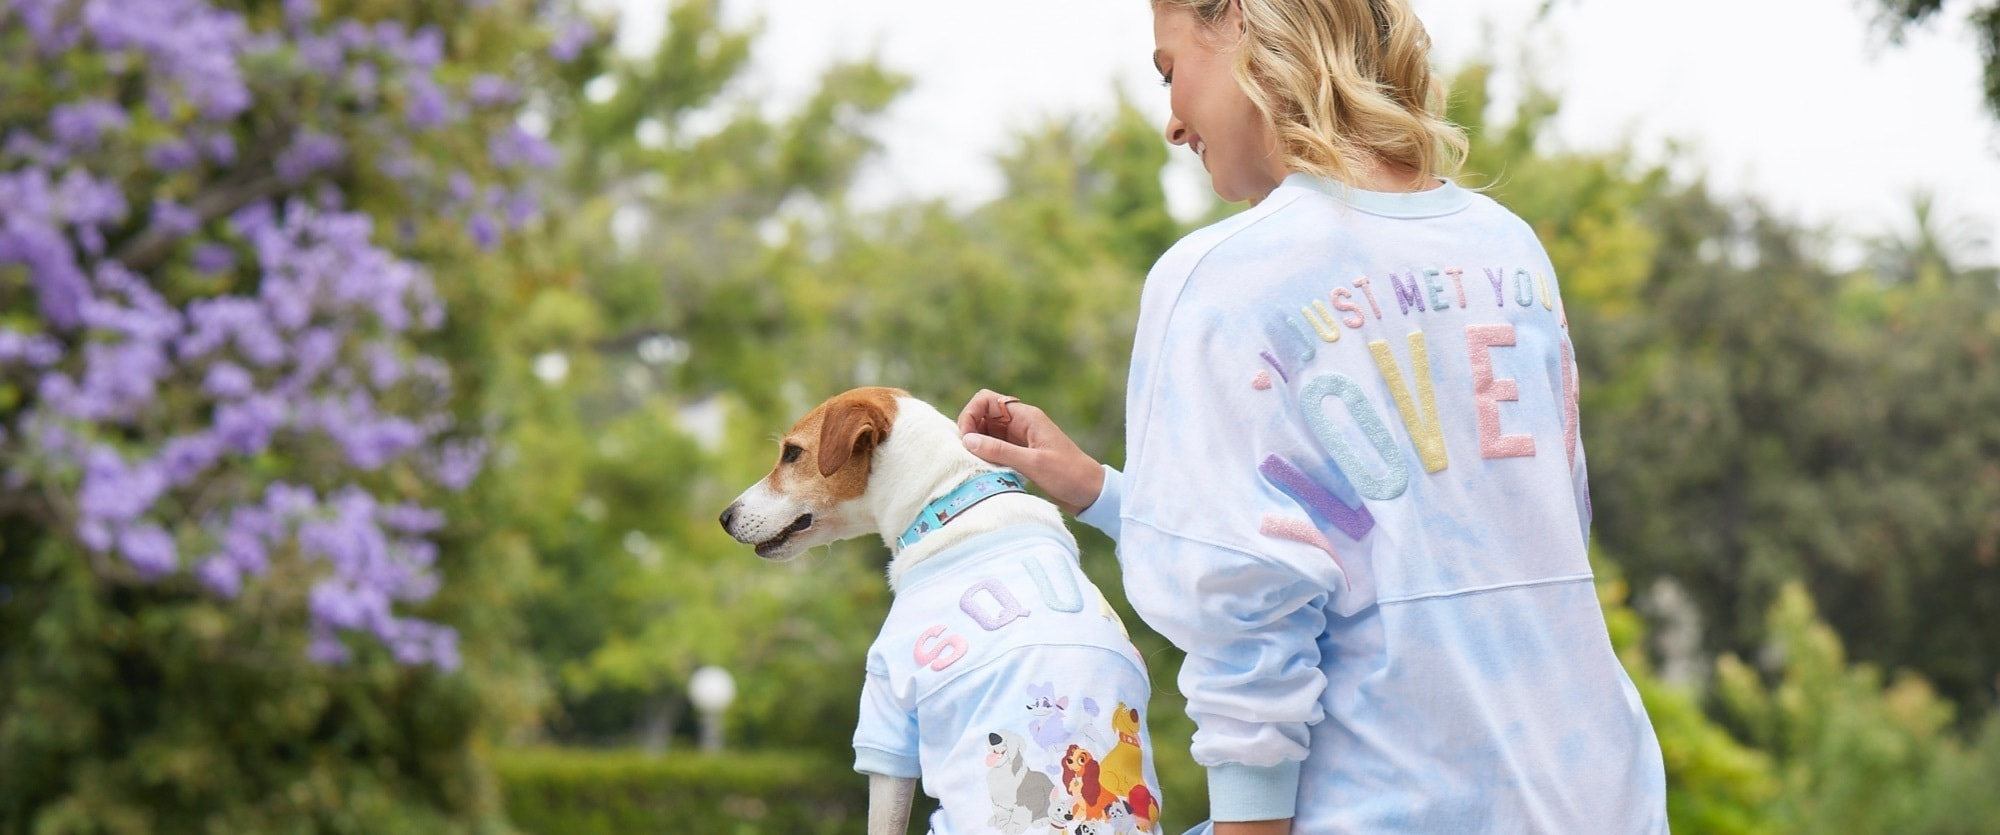 Shop the Disney Dogs Collection at shopDisney